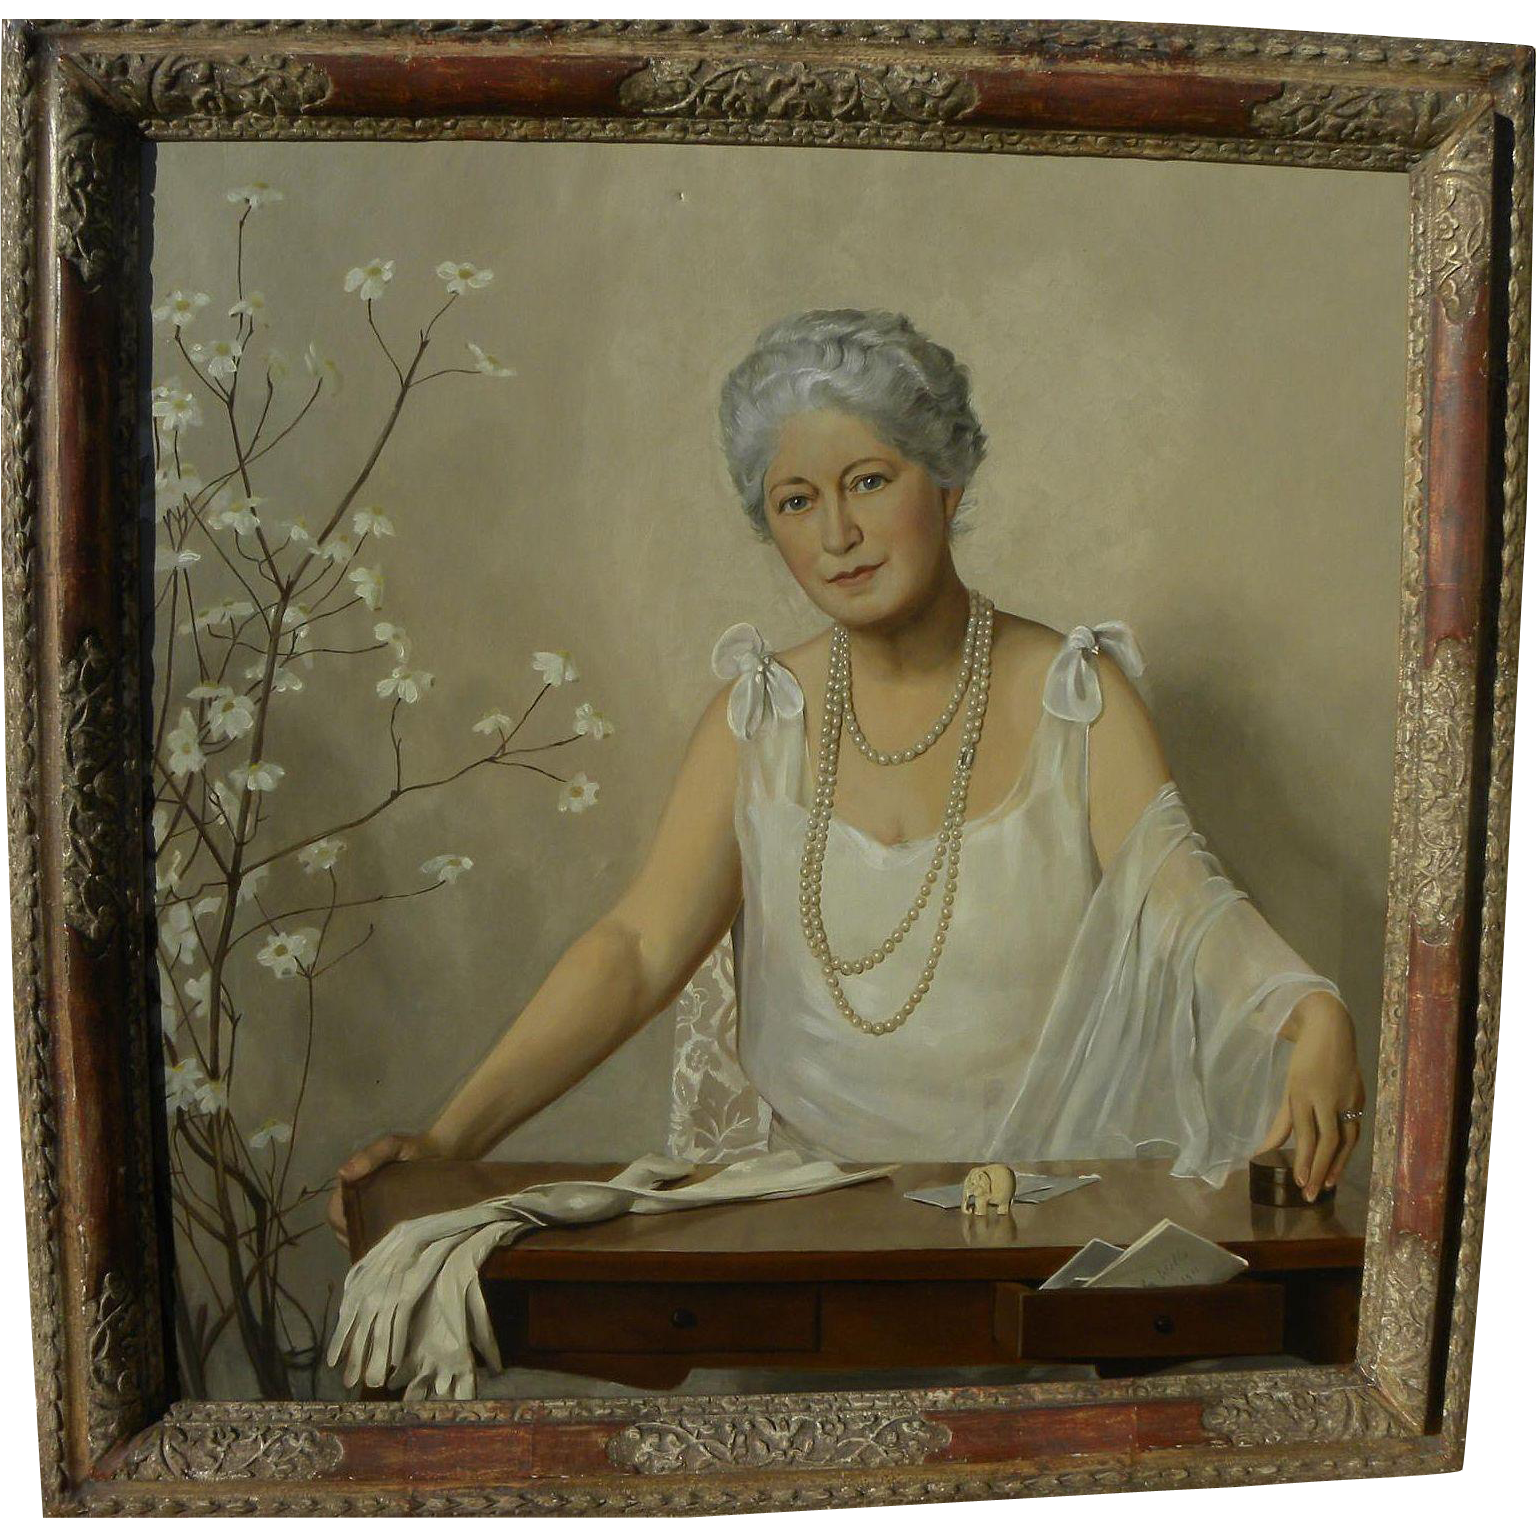 Large signed 1930 dated portrait of elegant society woman in important M. Grieve framing